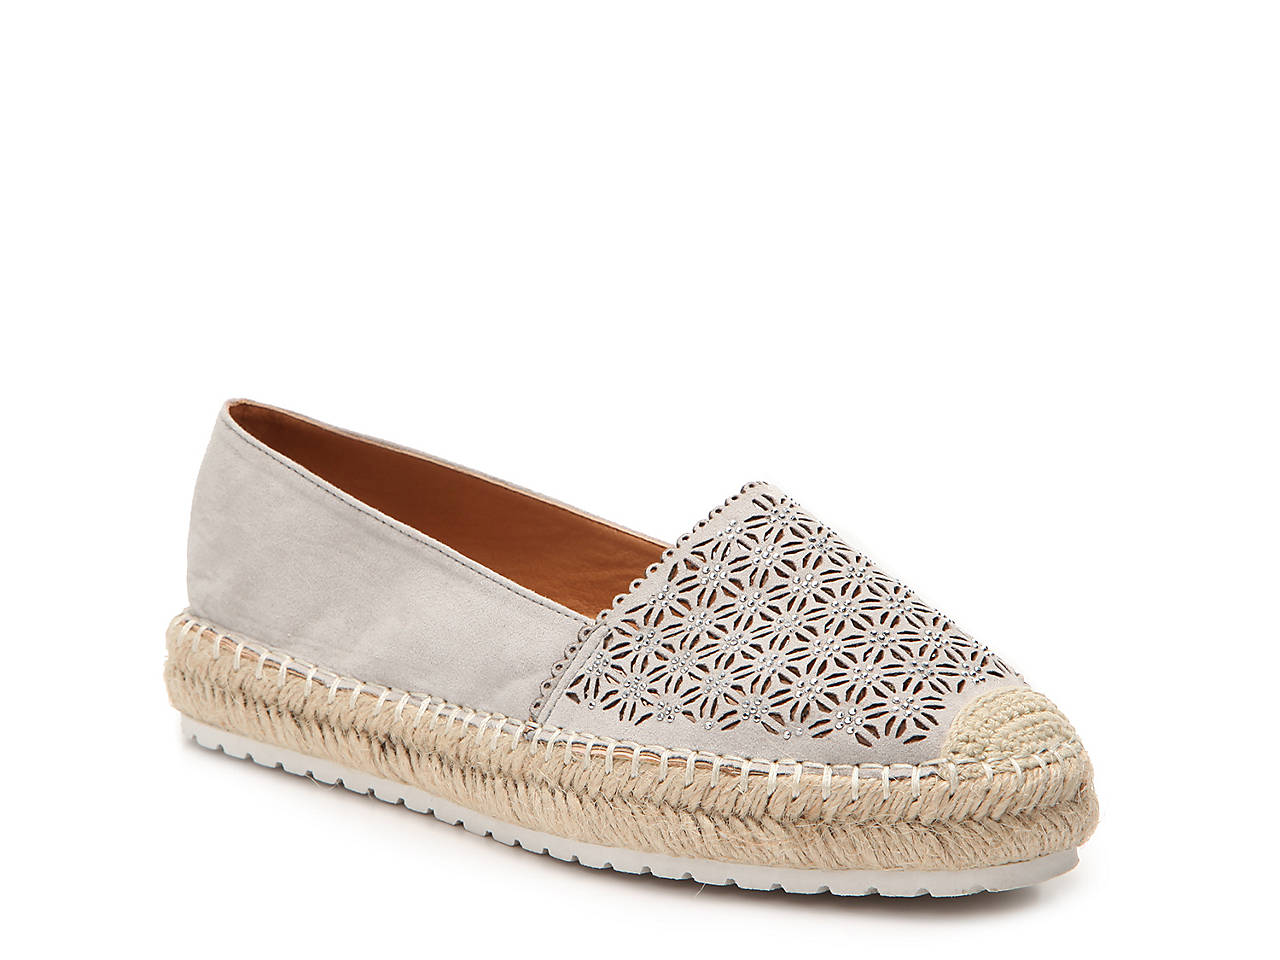 6369749607cc Athena Alexander Femka Flatform Slip-On Women s Shoes